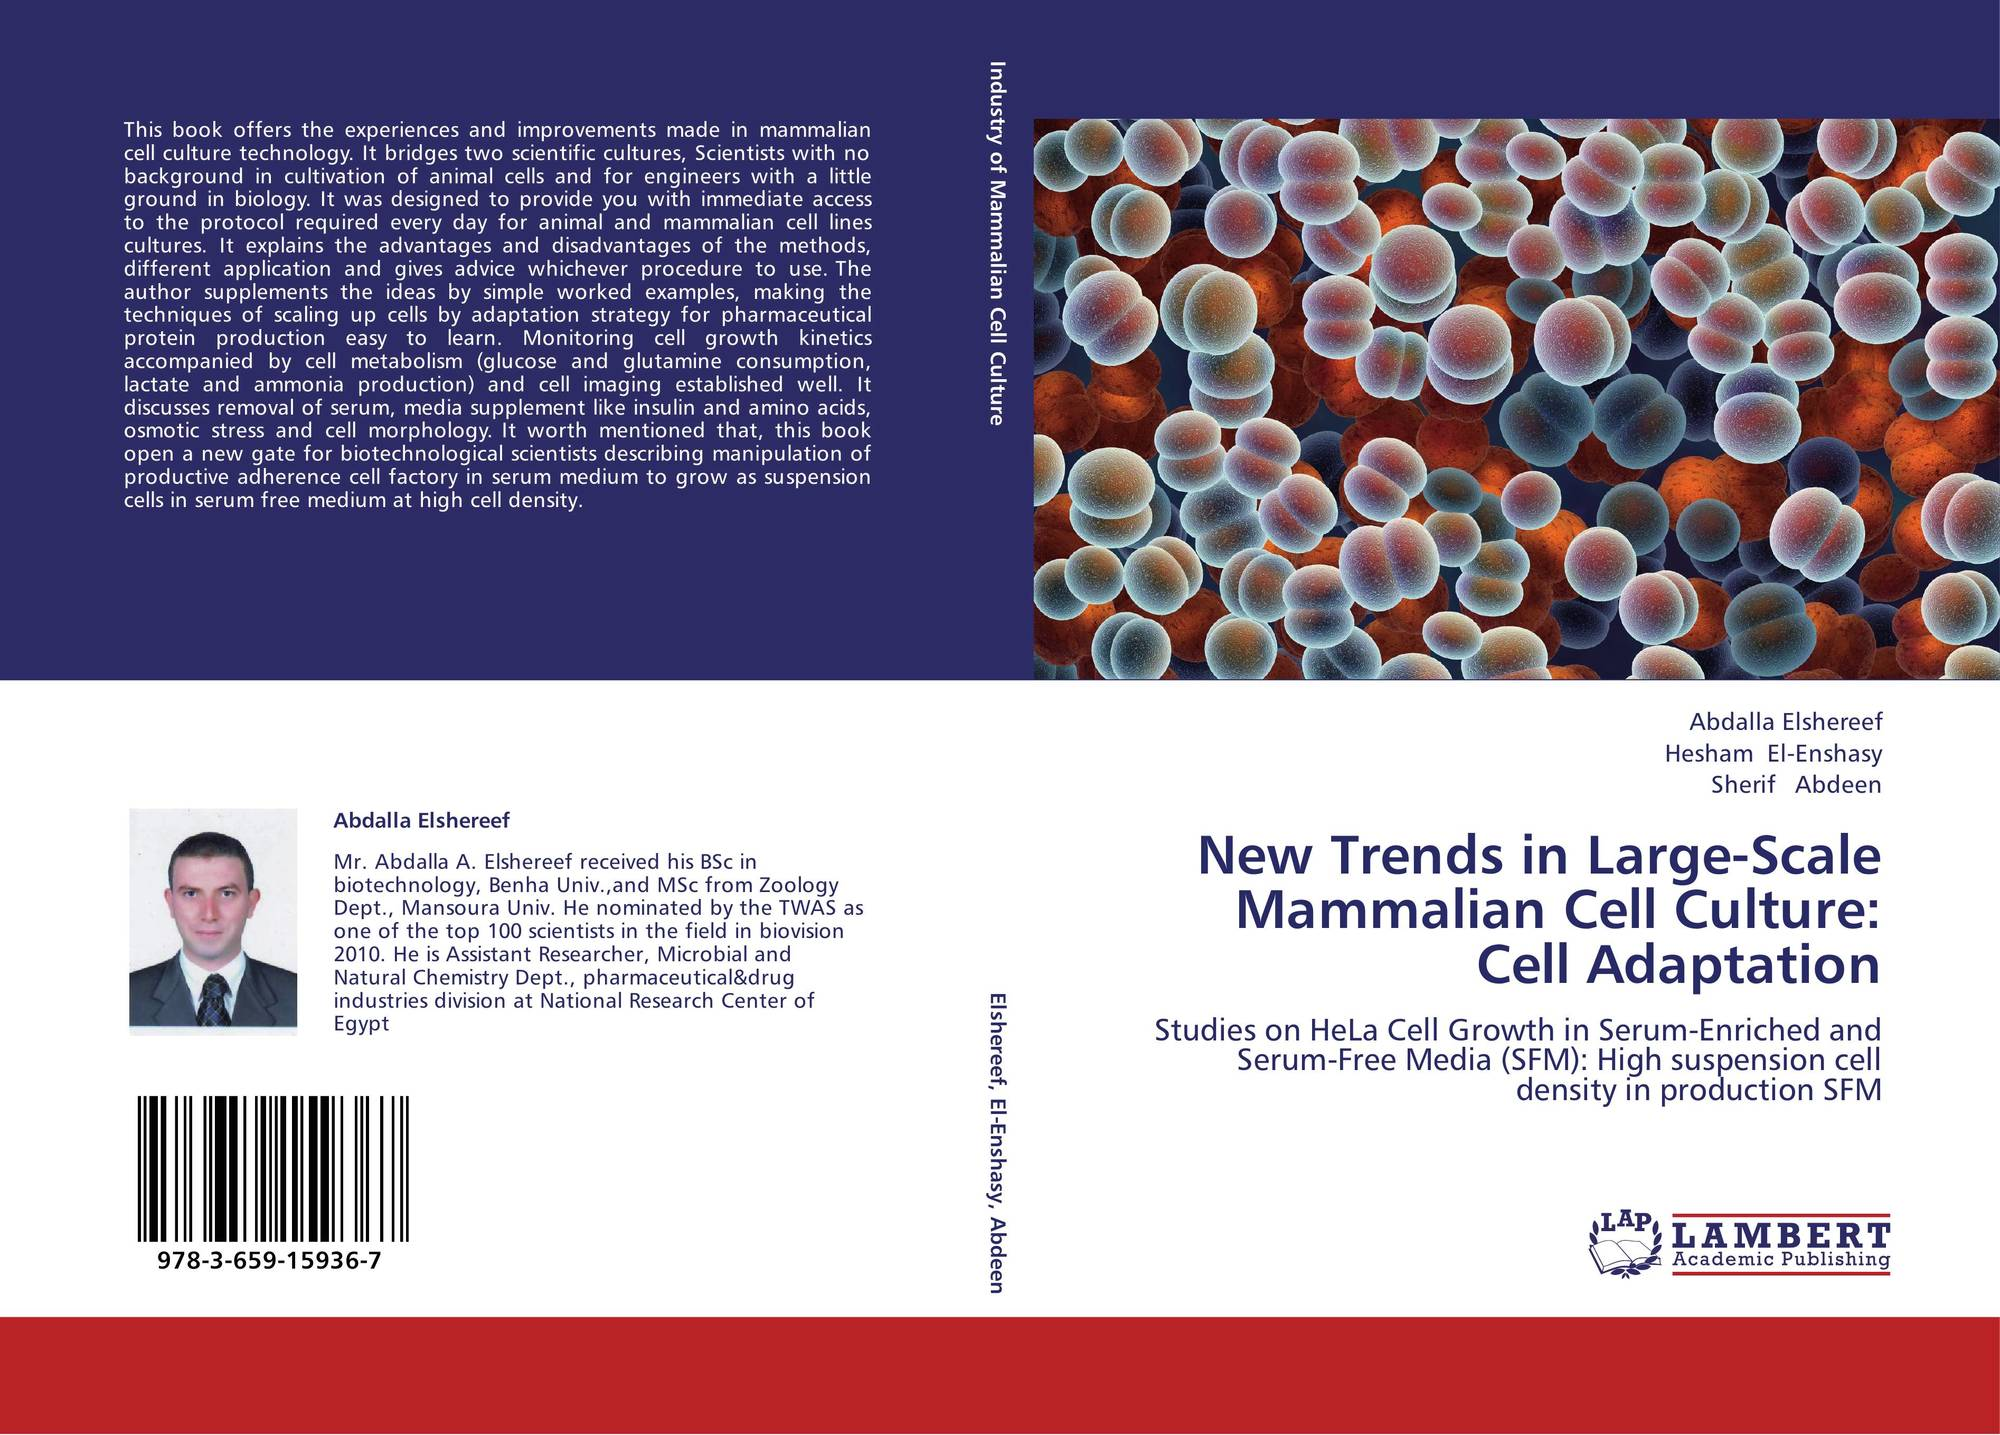 New Trends in Large-Scale Mammalian Cell Culture: Cell